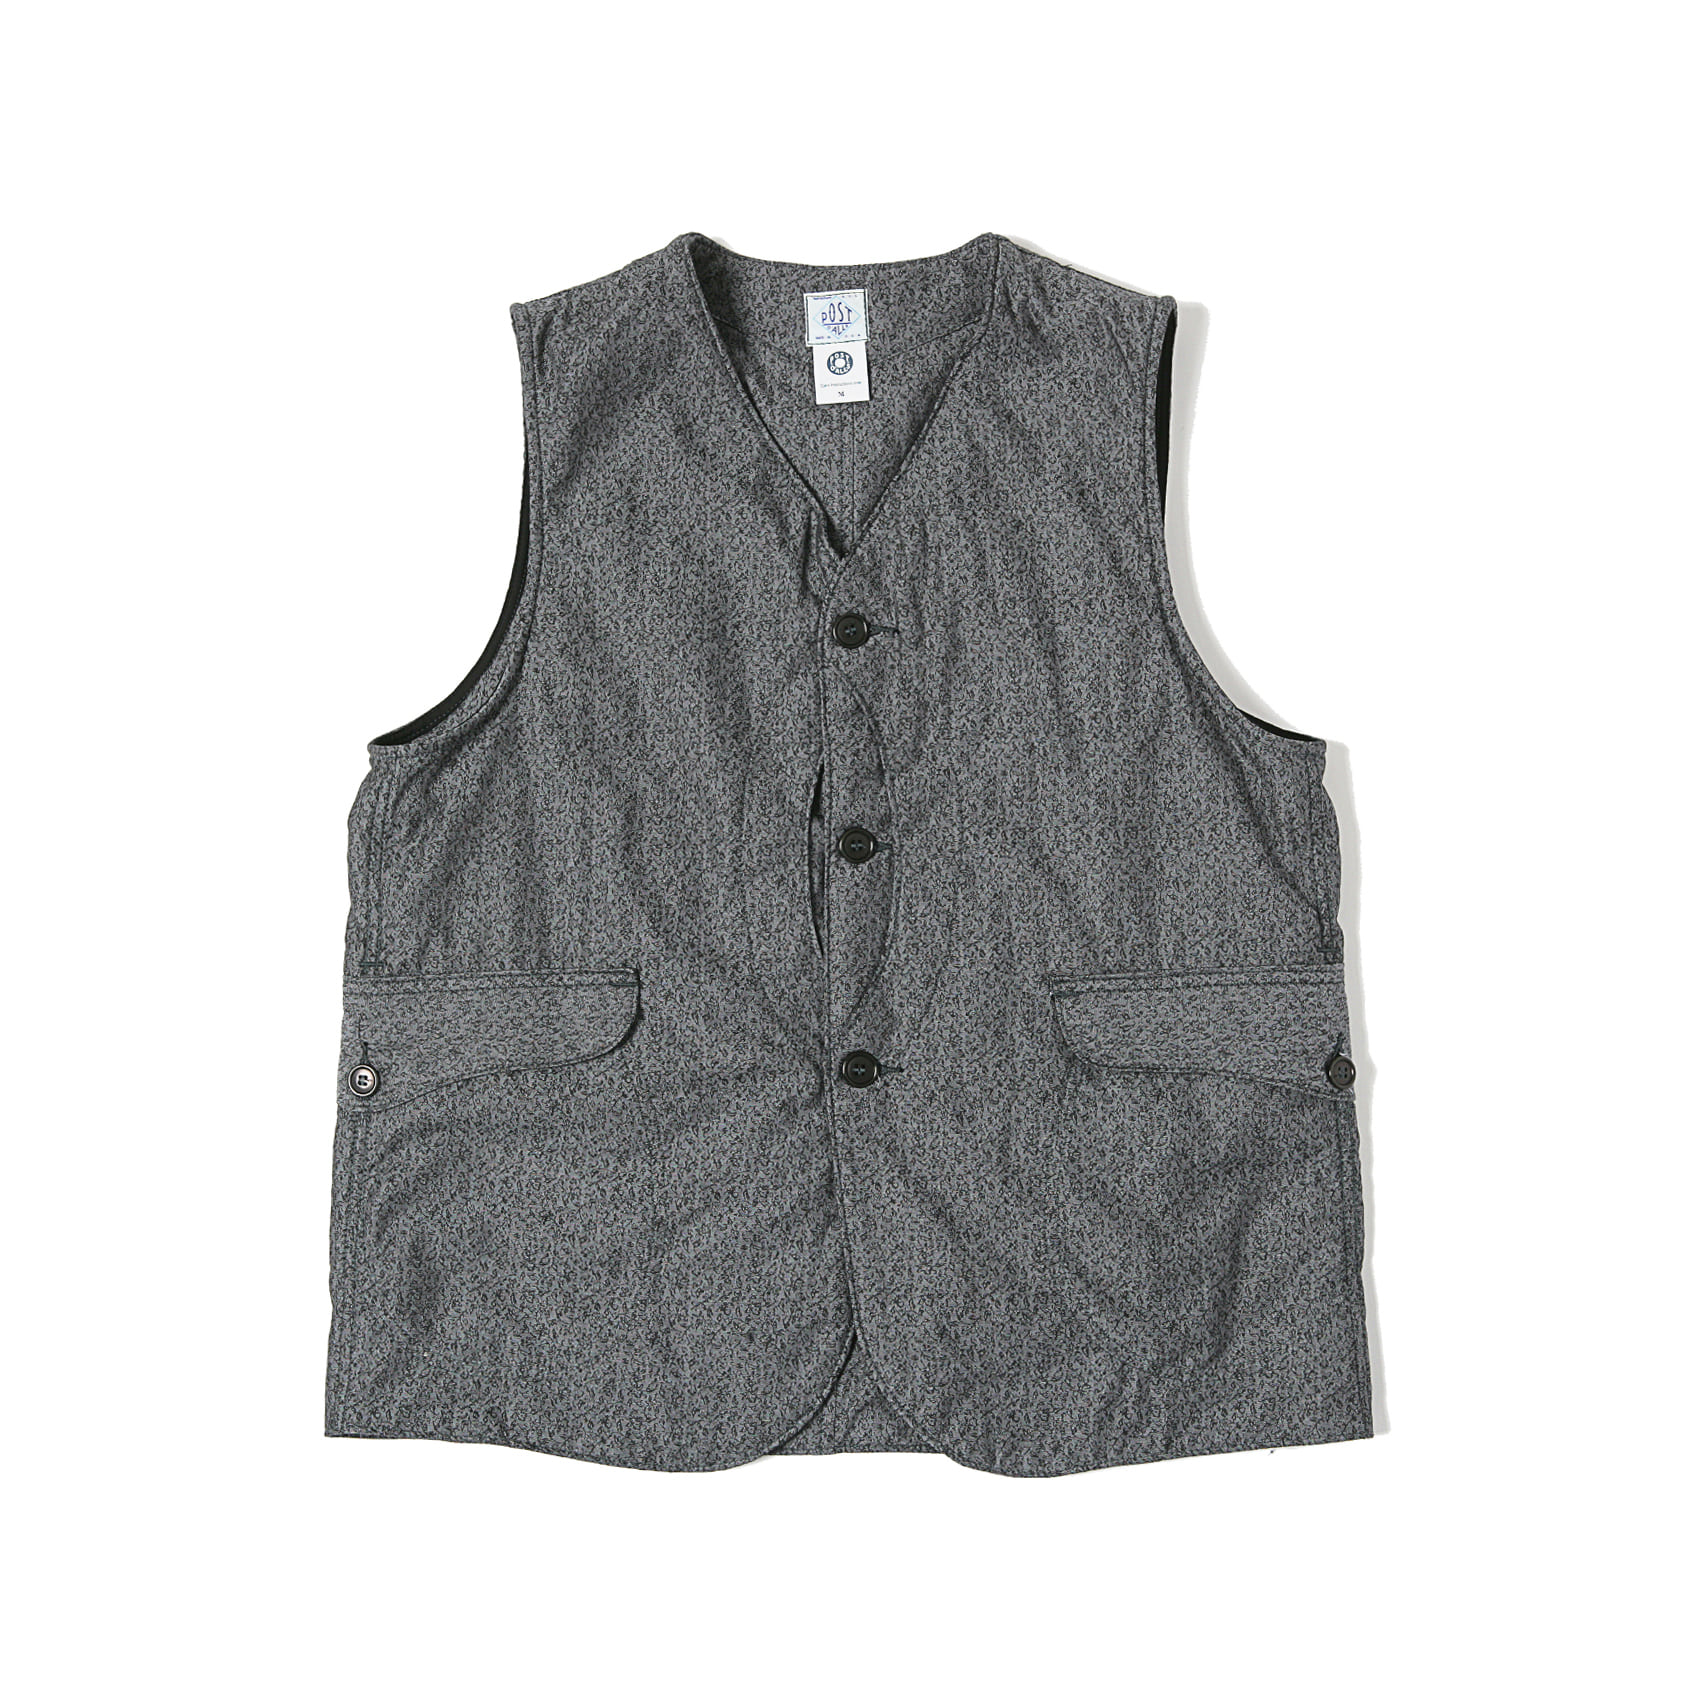 ROYAL TRAVELER VEST - GREY